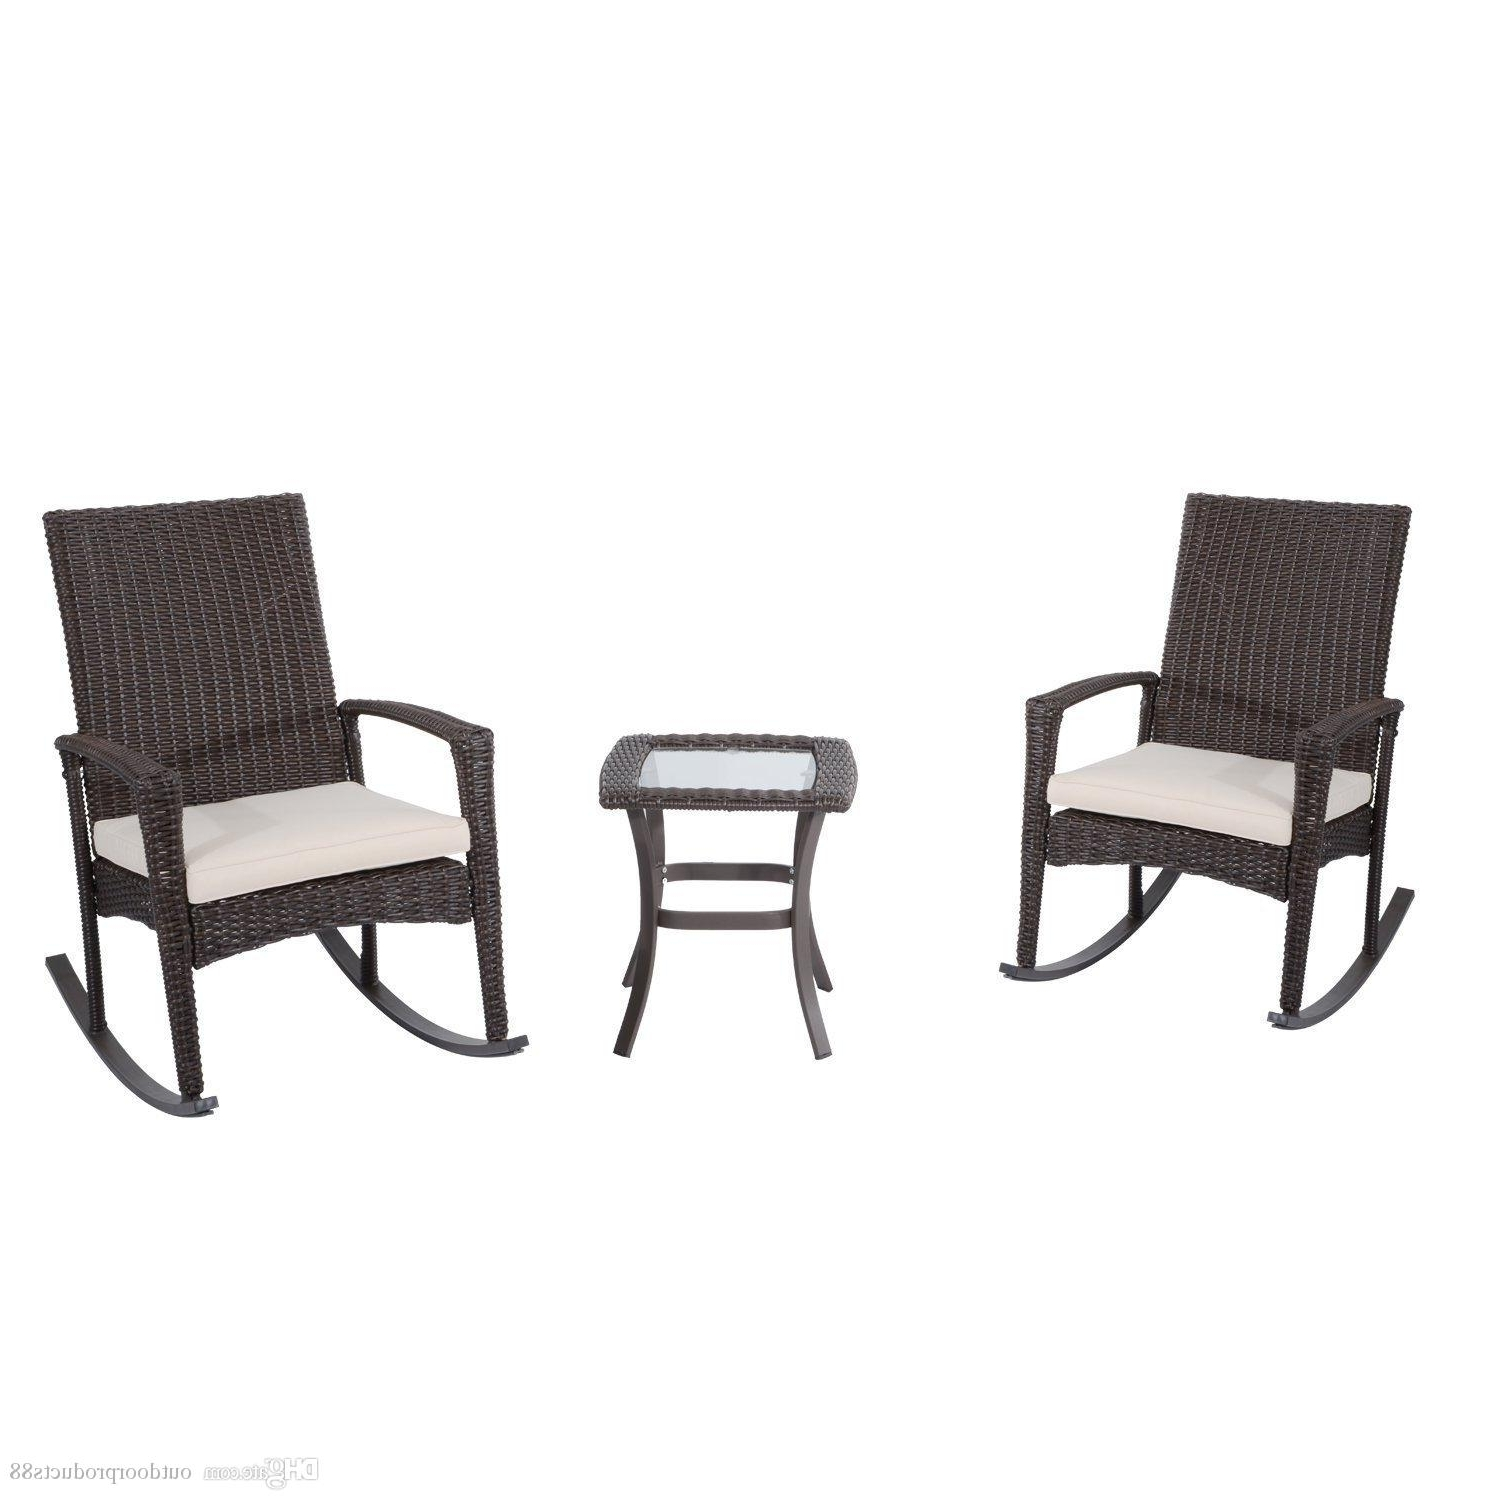 2018 Outdoor Rocking Chair And Table Set,rocking Rattan Wicker Chiar Inside Preferred Outdoor Rocking Chairs With Table (View 7 of 15)